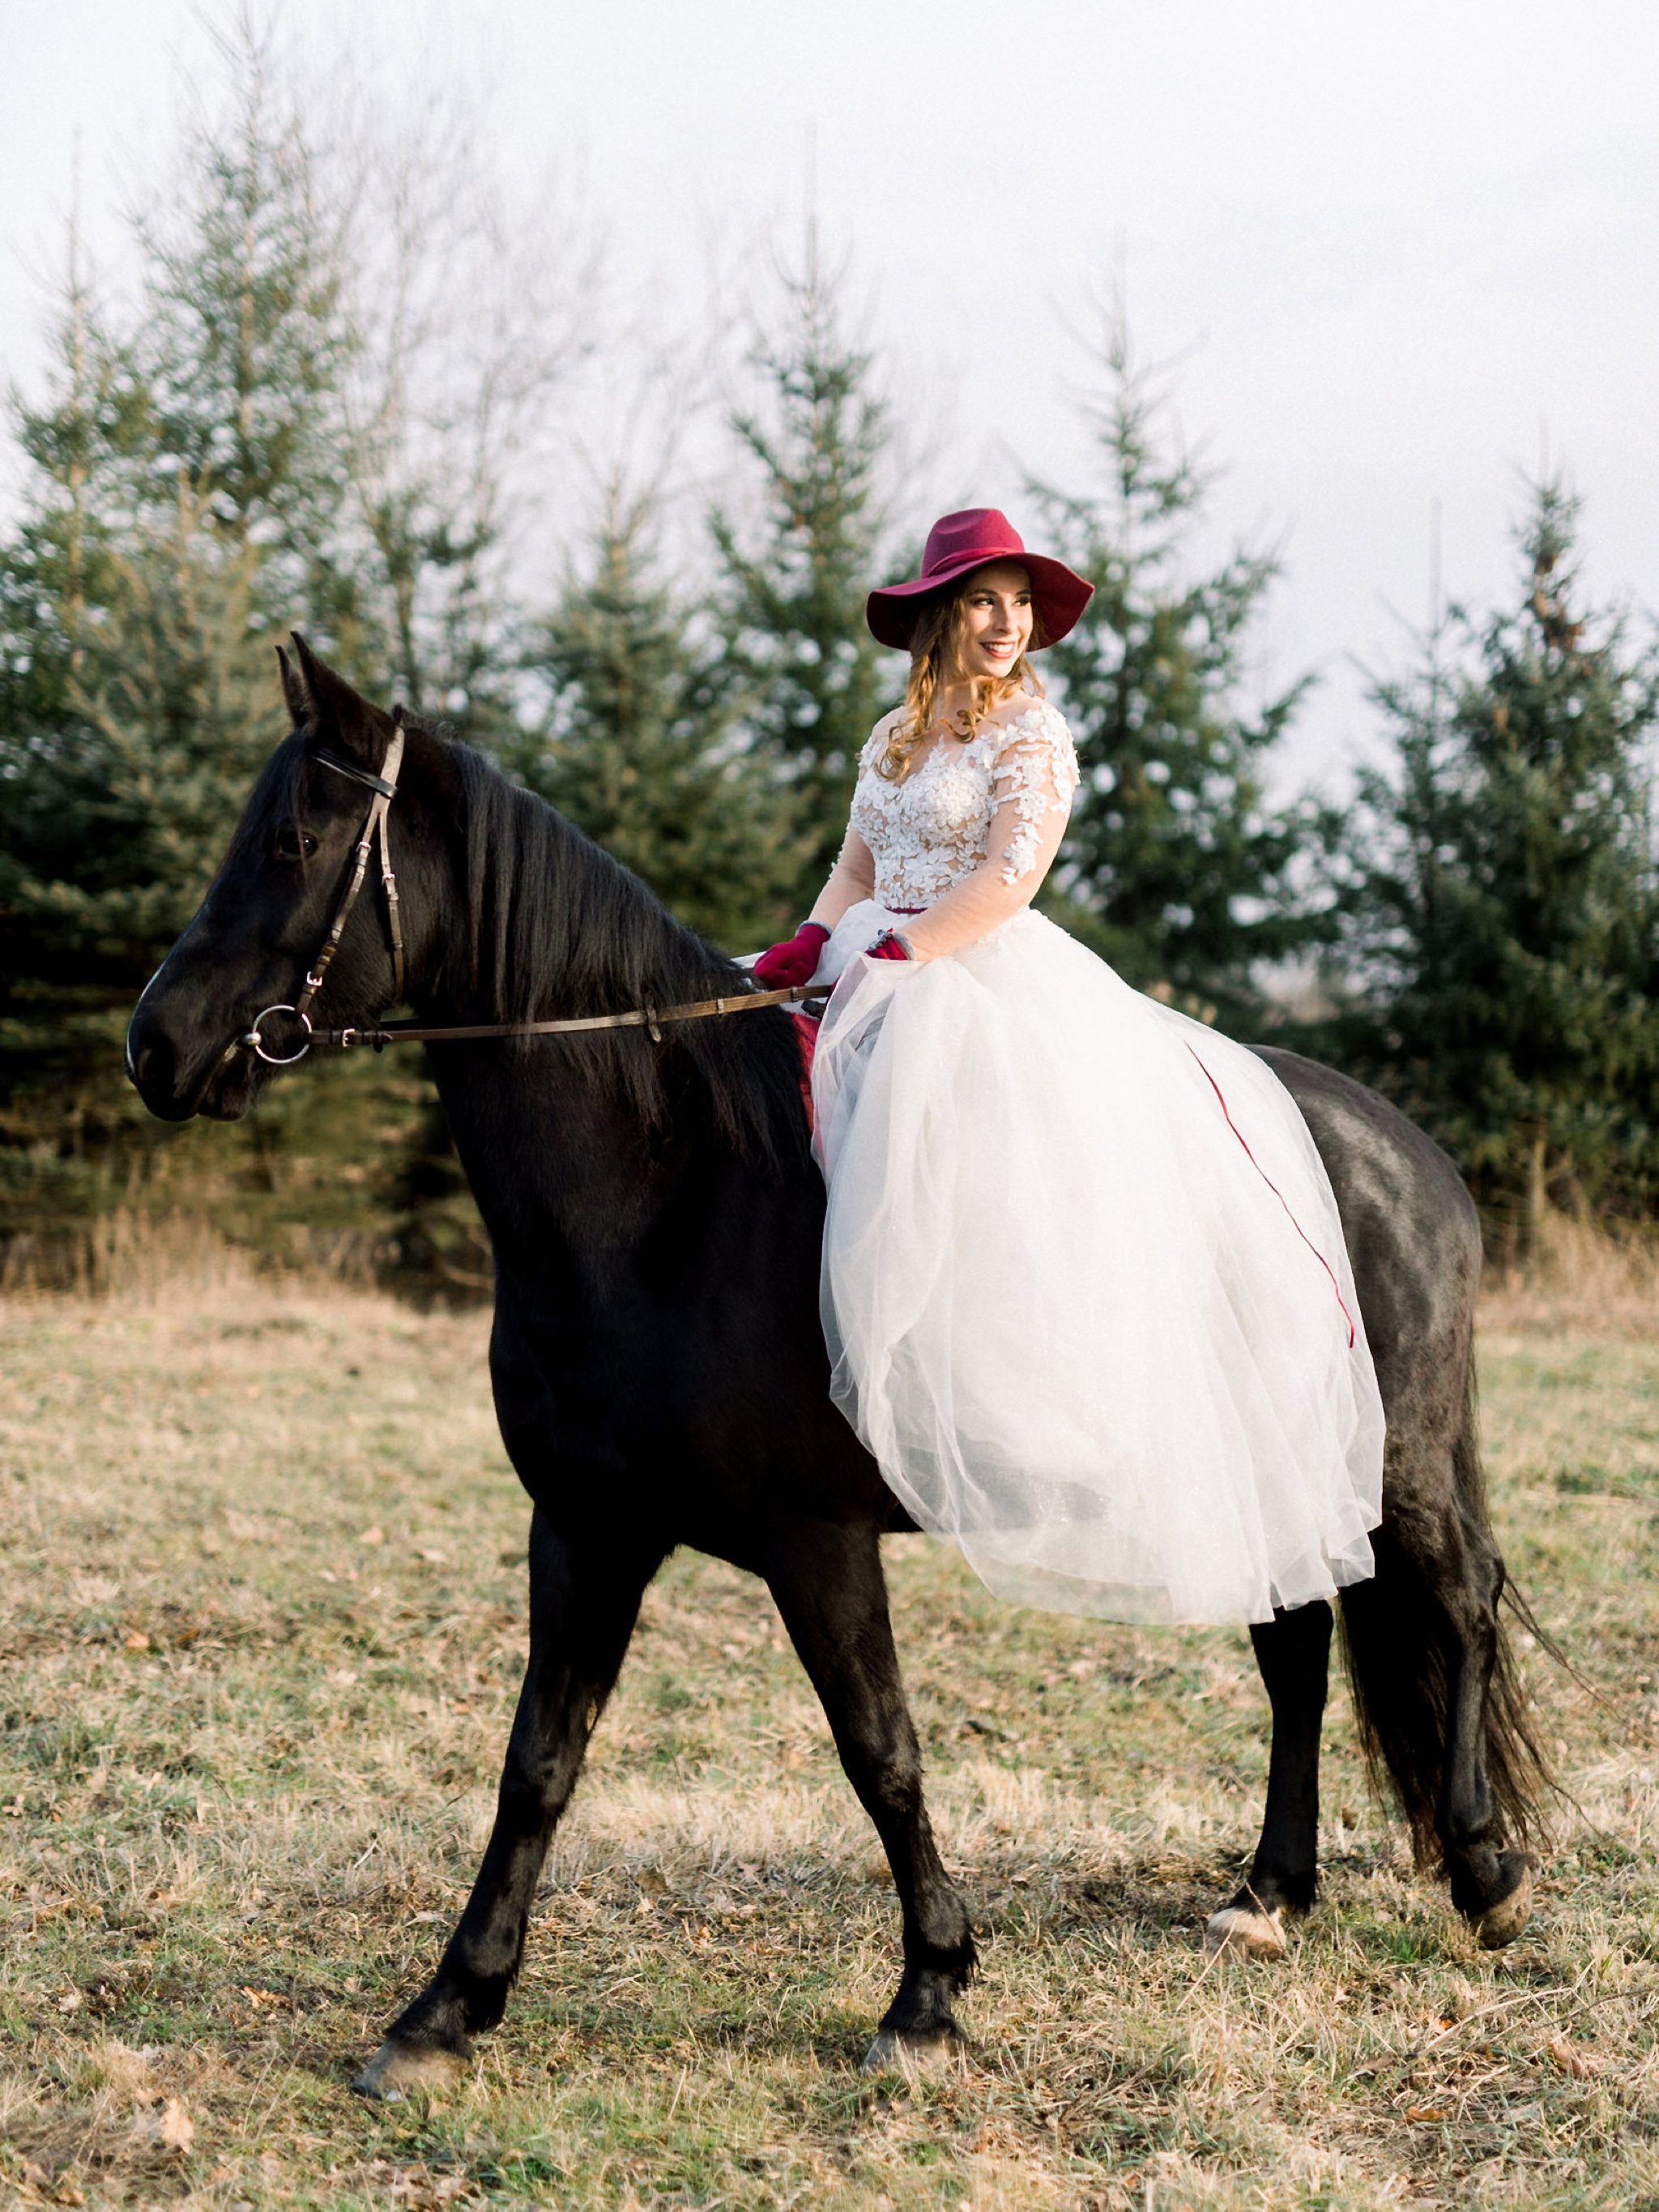 Sweet Winter Horseback Wedding Photoshoot 16 1